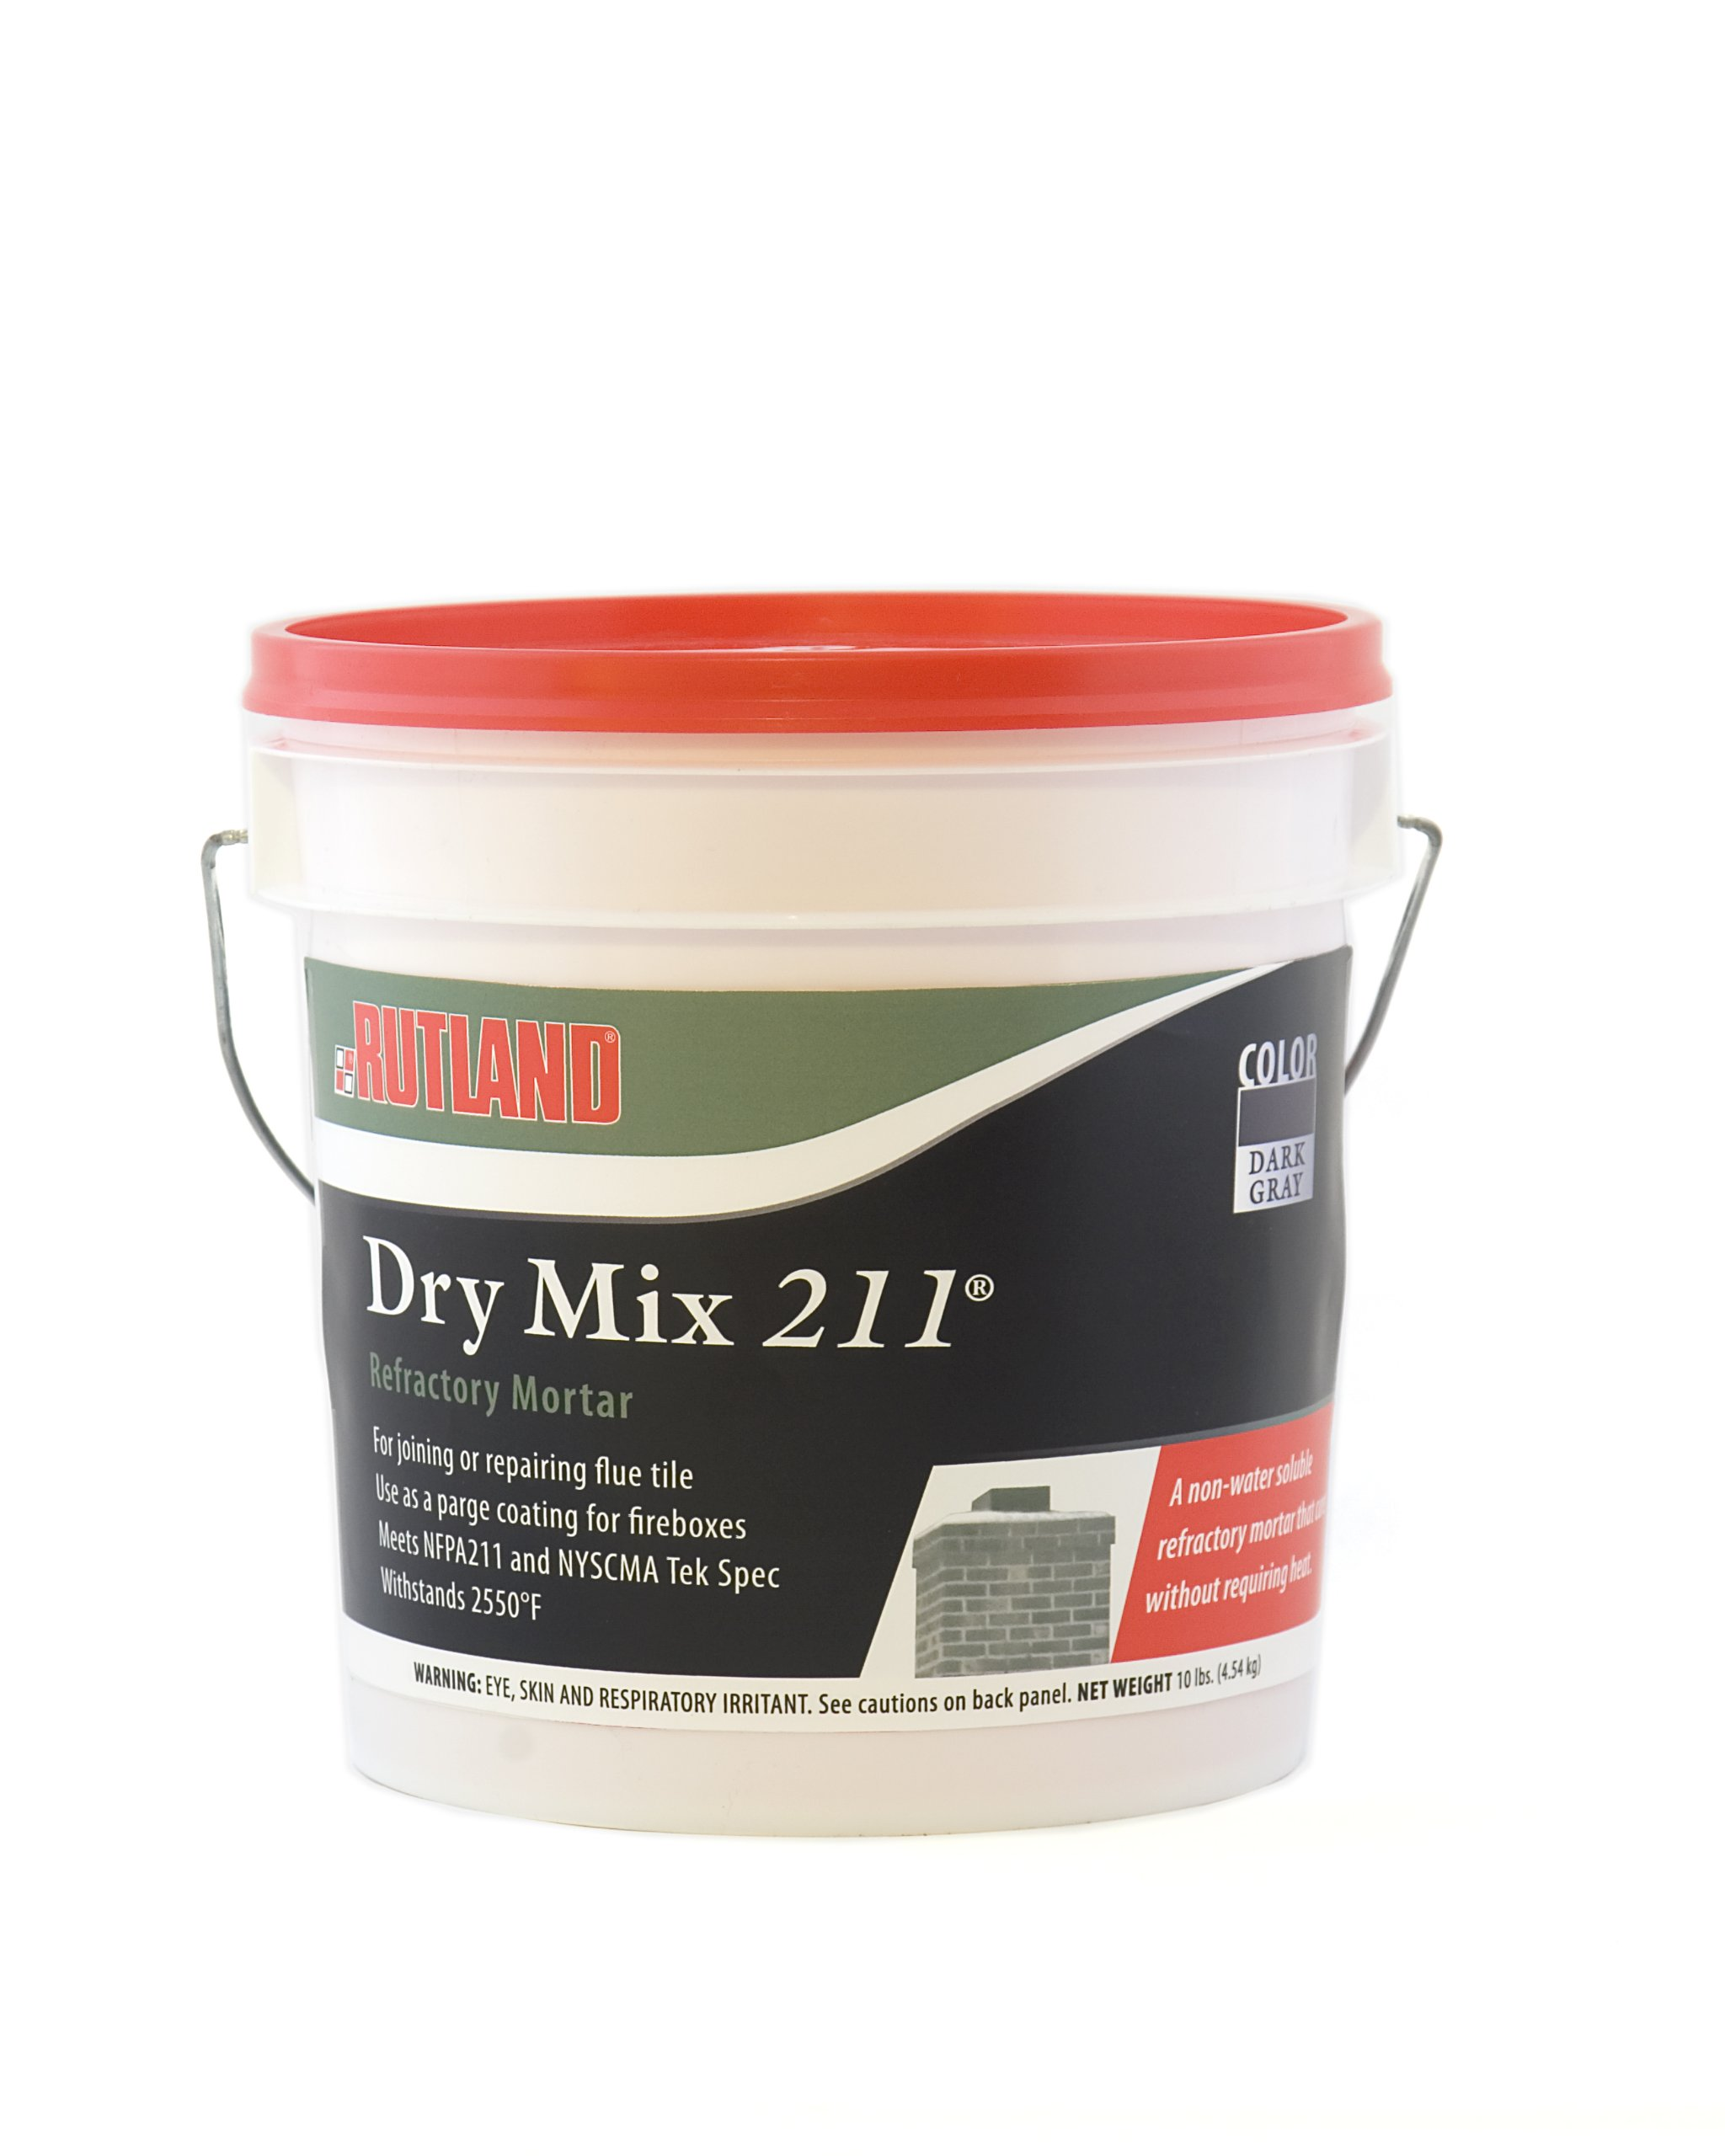 Rutland Products 211 Dry Mix Refractory Cement, 10 lbs by Rutland Products